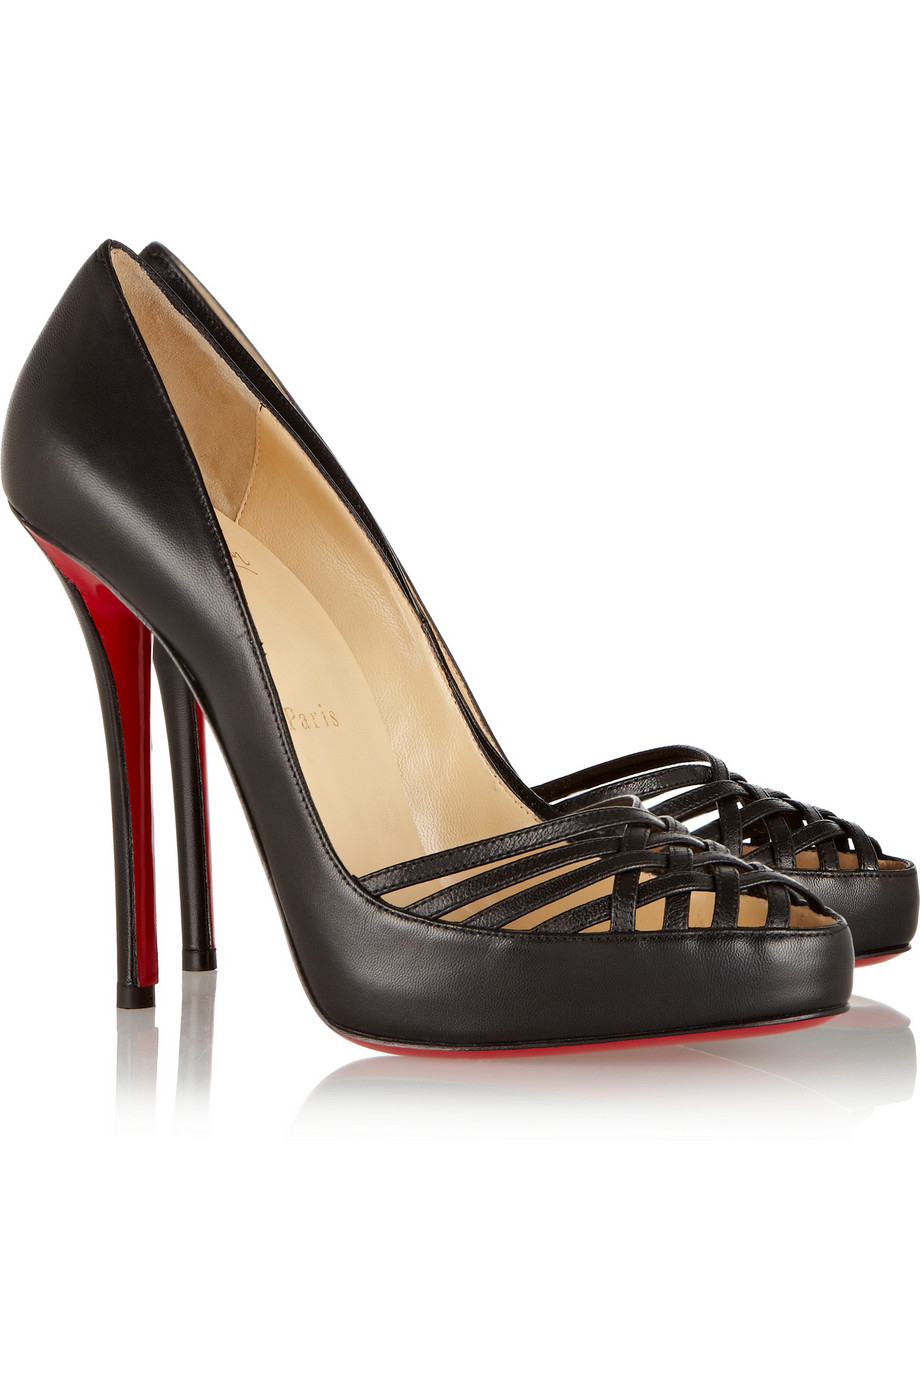 Christian louboutin Luciana 120 Cutout Leather Pumps in Black | Lyst